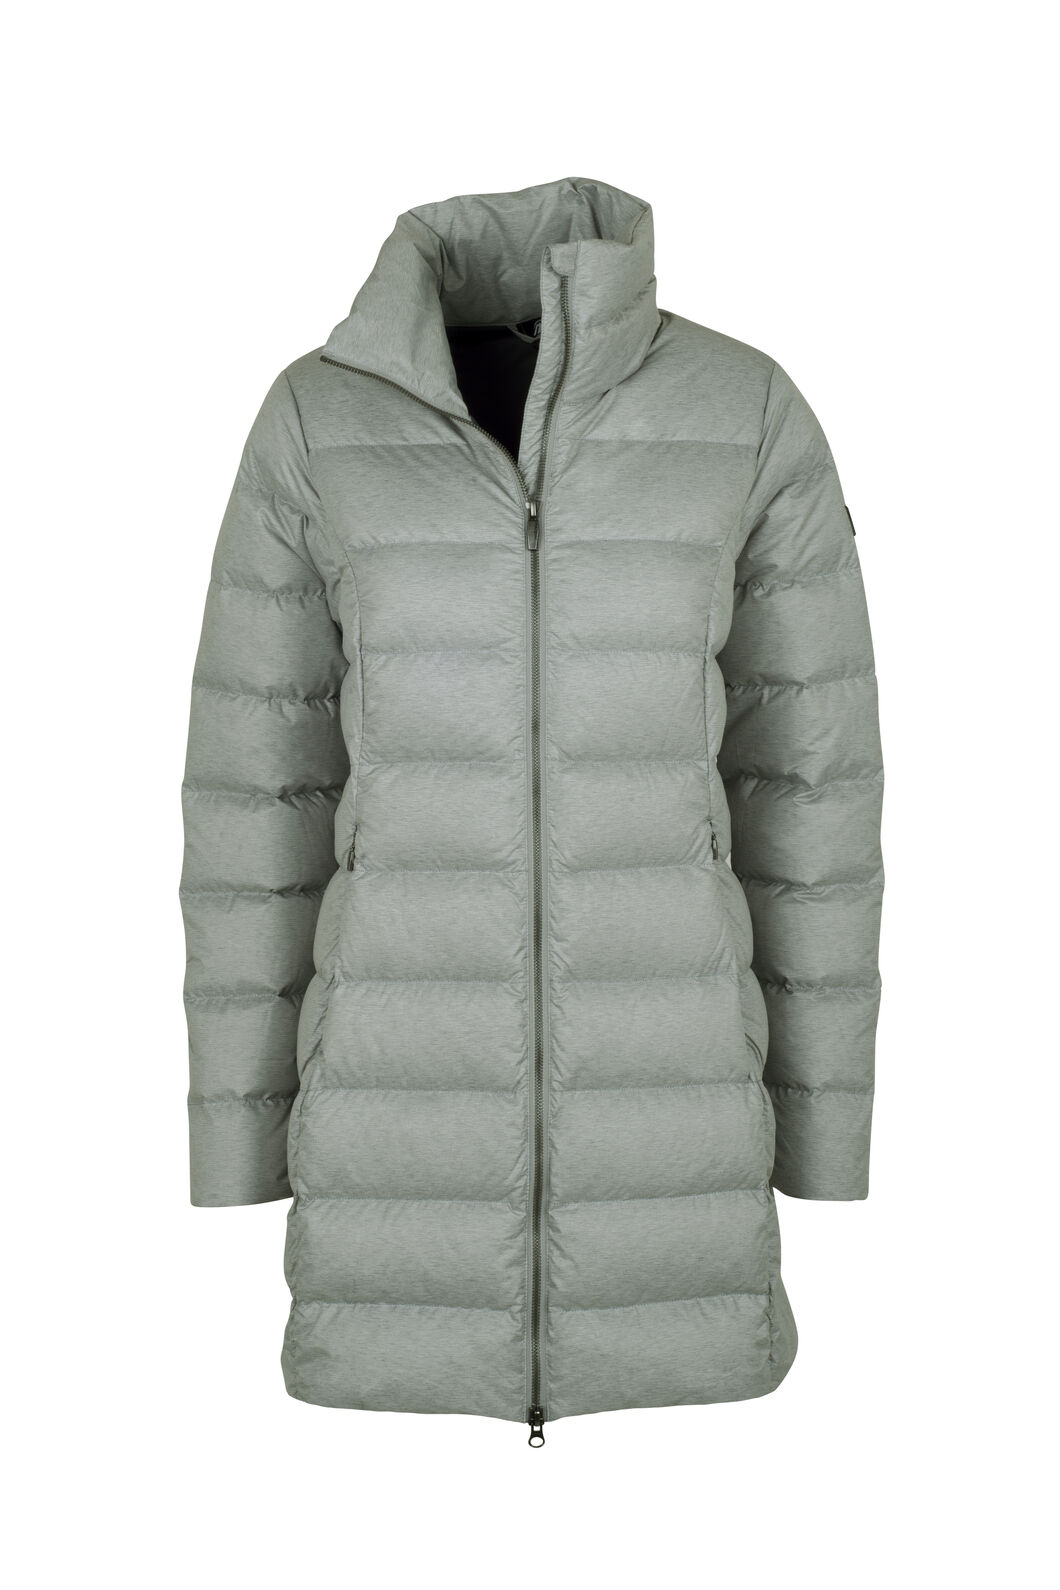 Macpac Demi Down Coat - Women's, Grey Morn Melange, hi-res